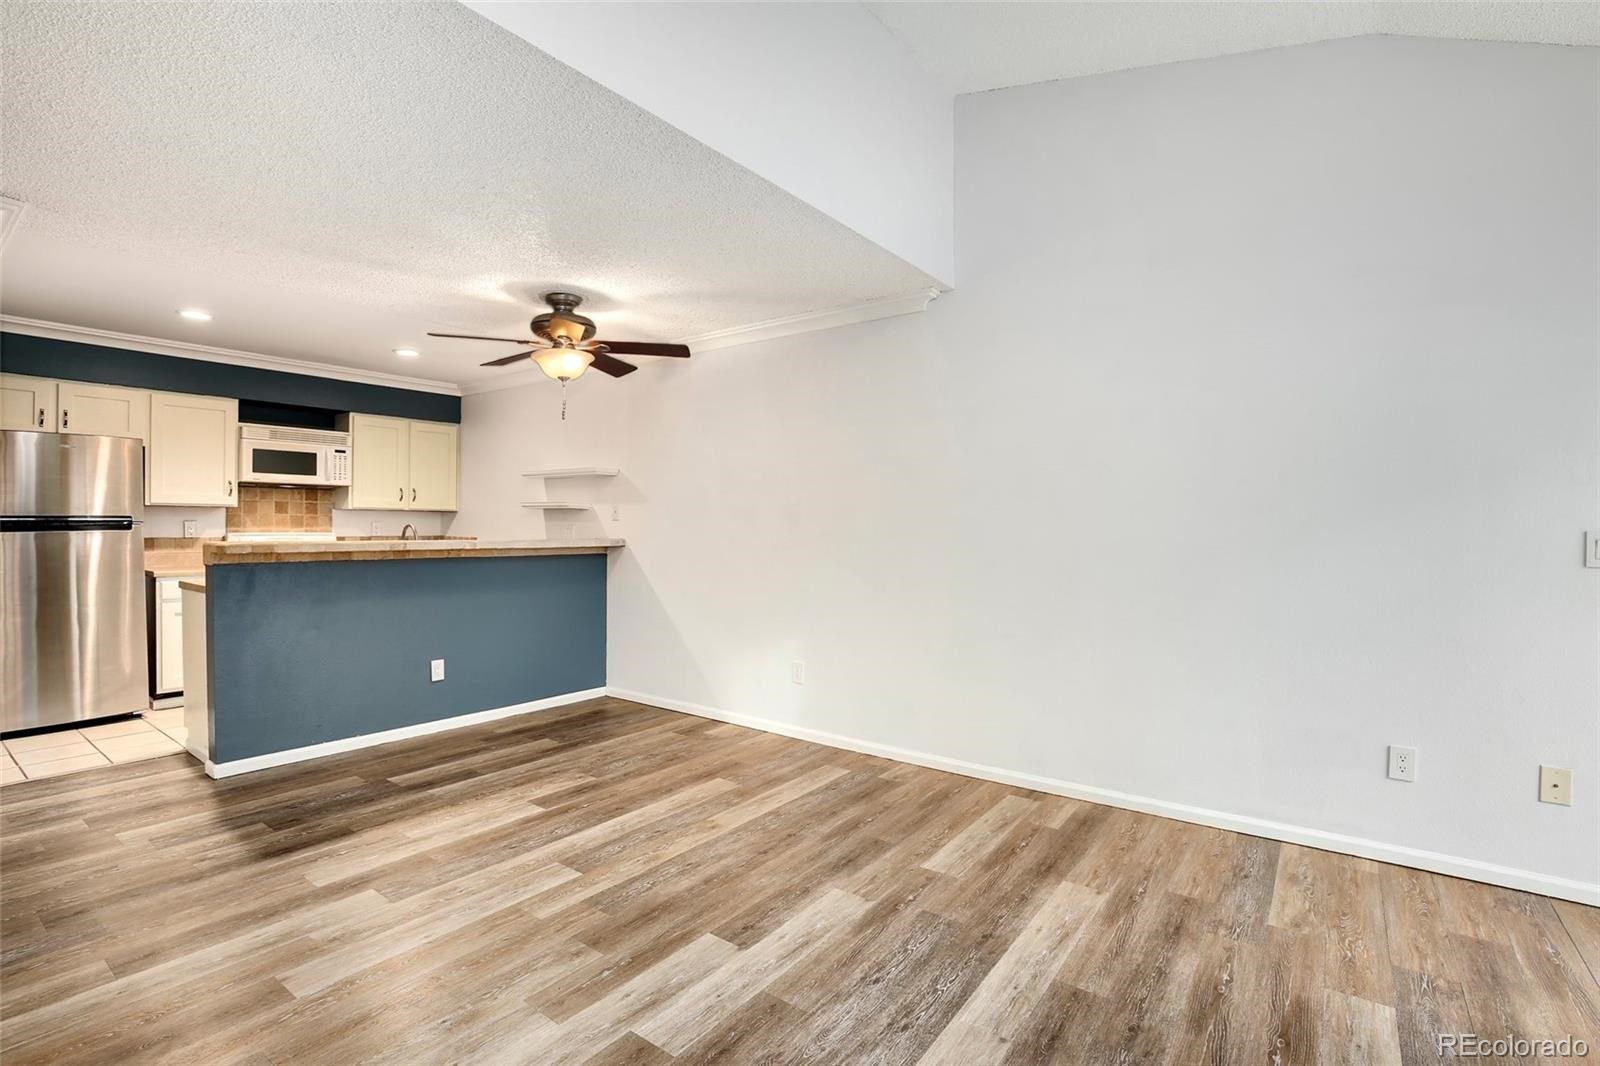 MLS# 7201286 - 7 - 8375 W 90th Place, Westminster, CO 80021